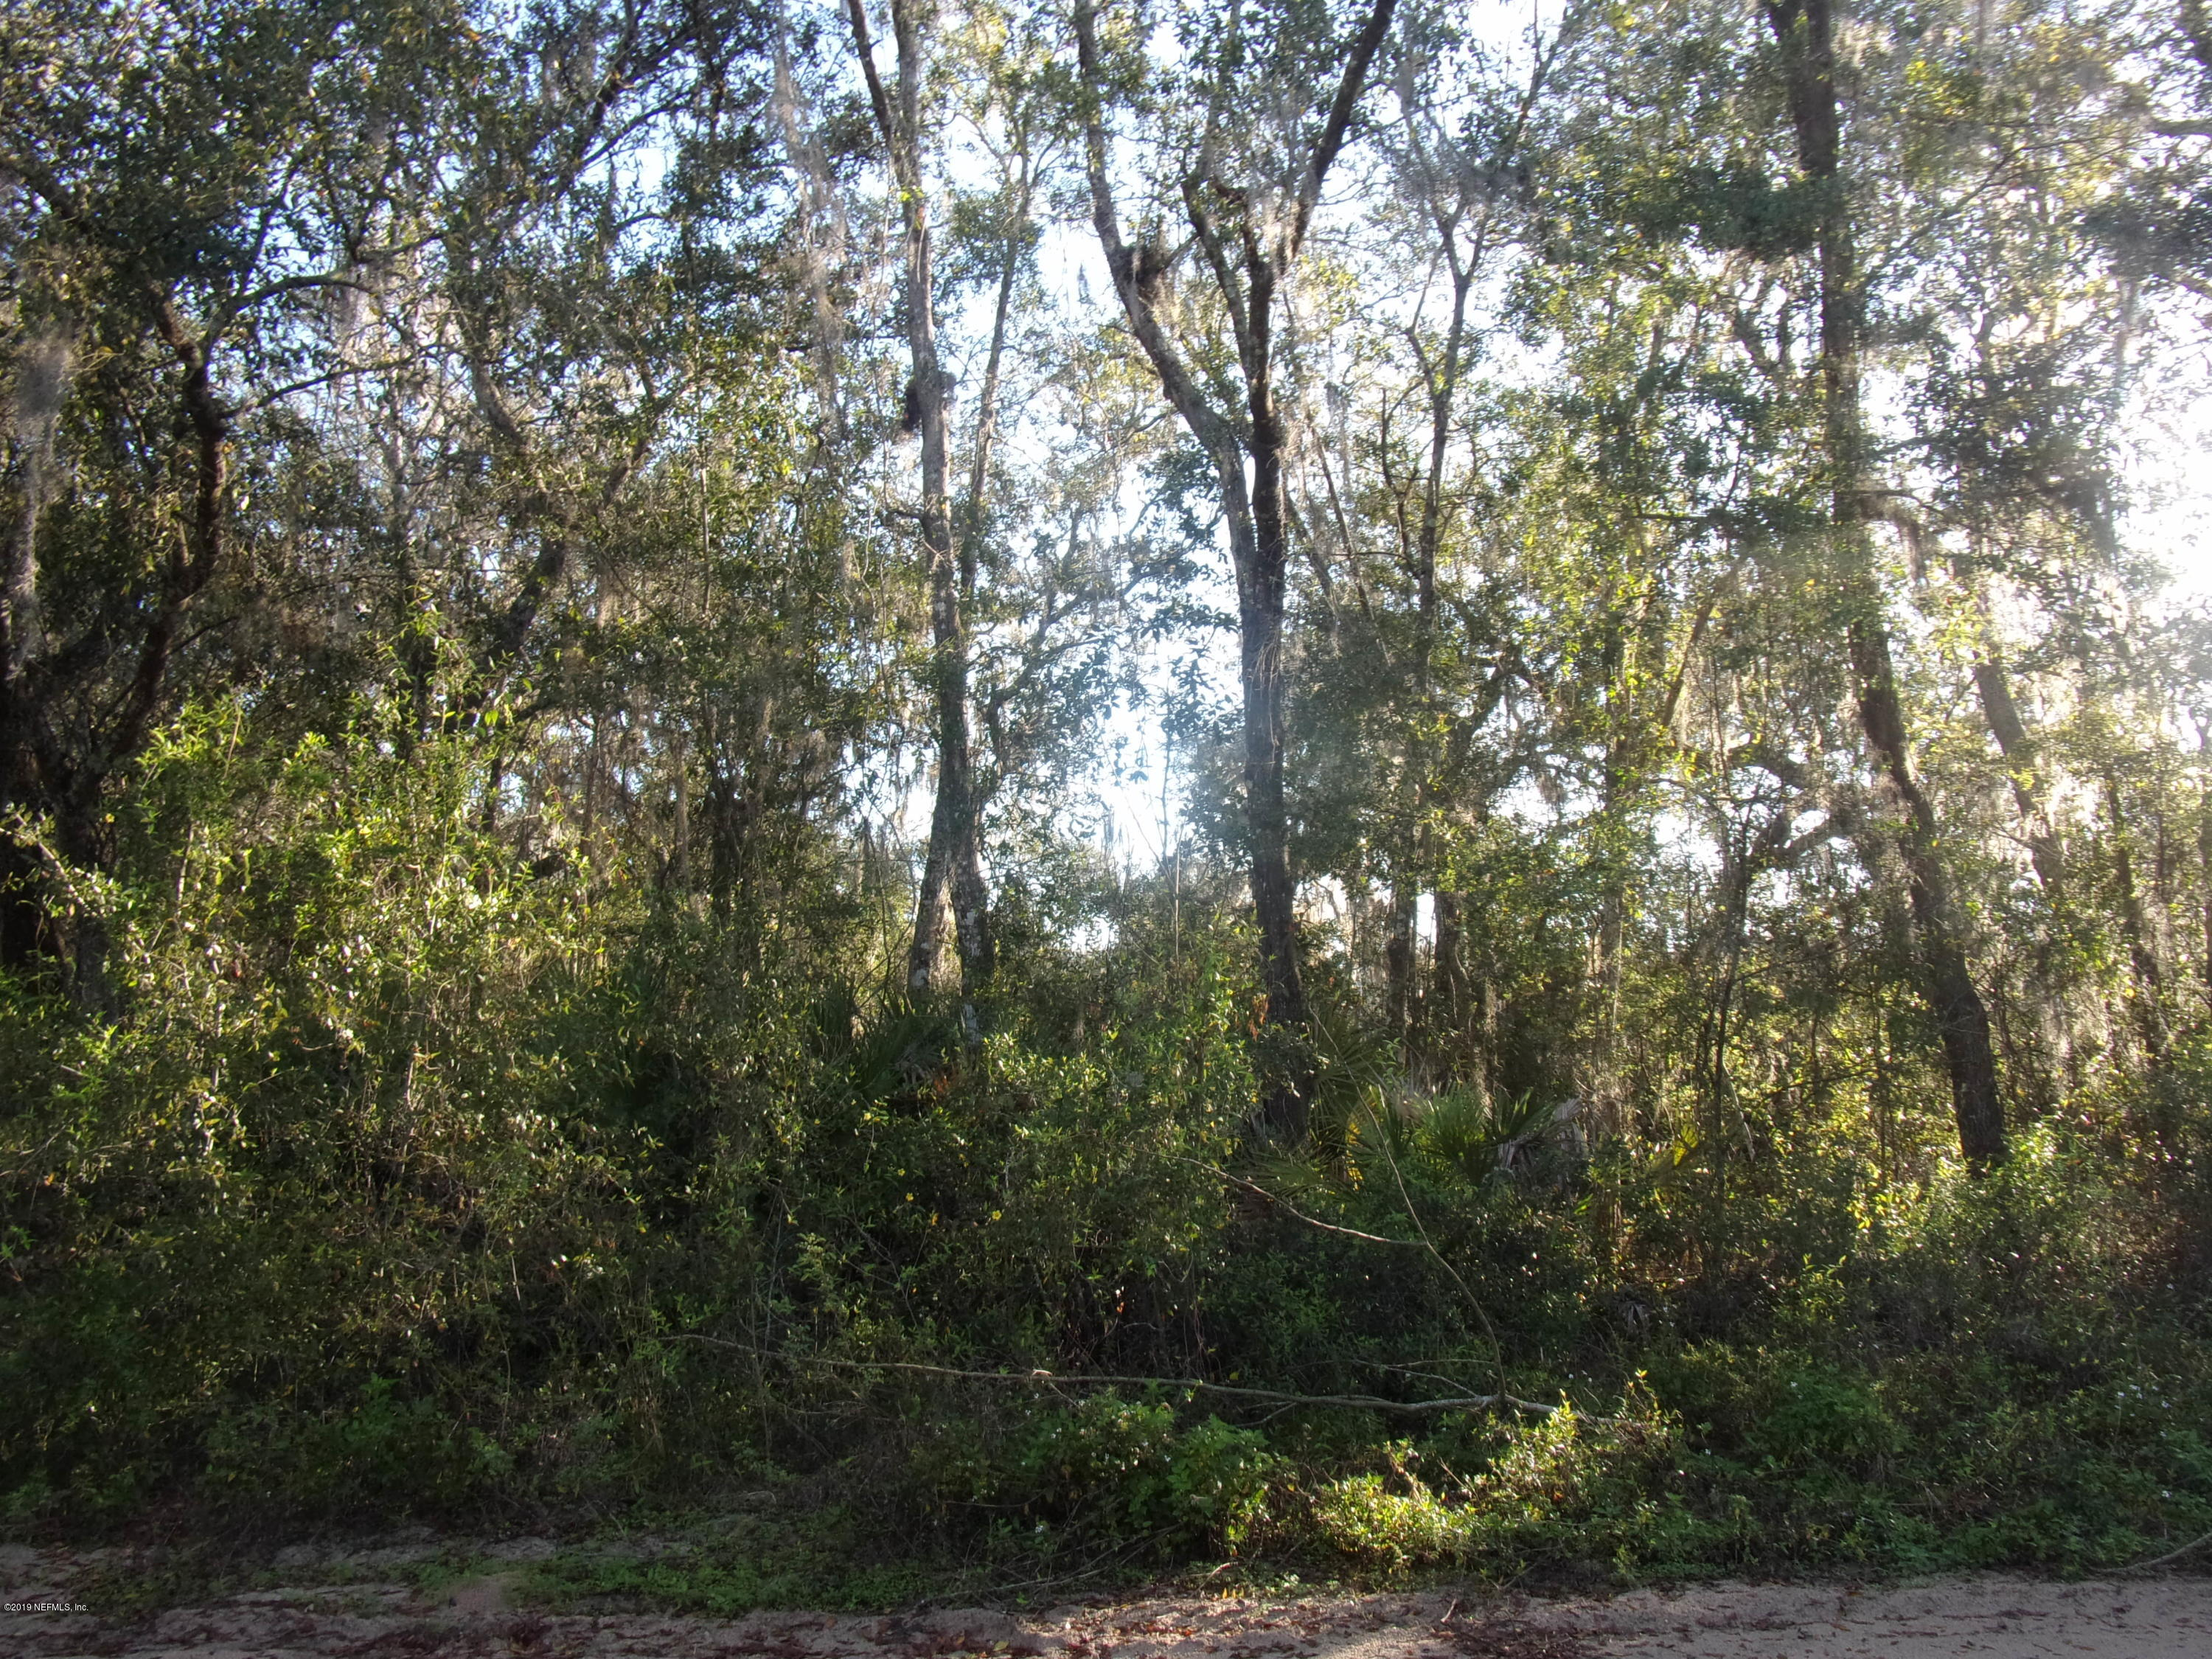 000 LANDMARK, SATSUMA, FLORIDA 32189, ,Vacant land,For sale,LANDMARK,981007